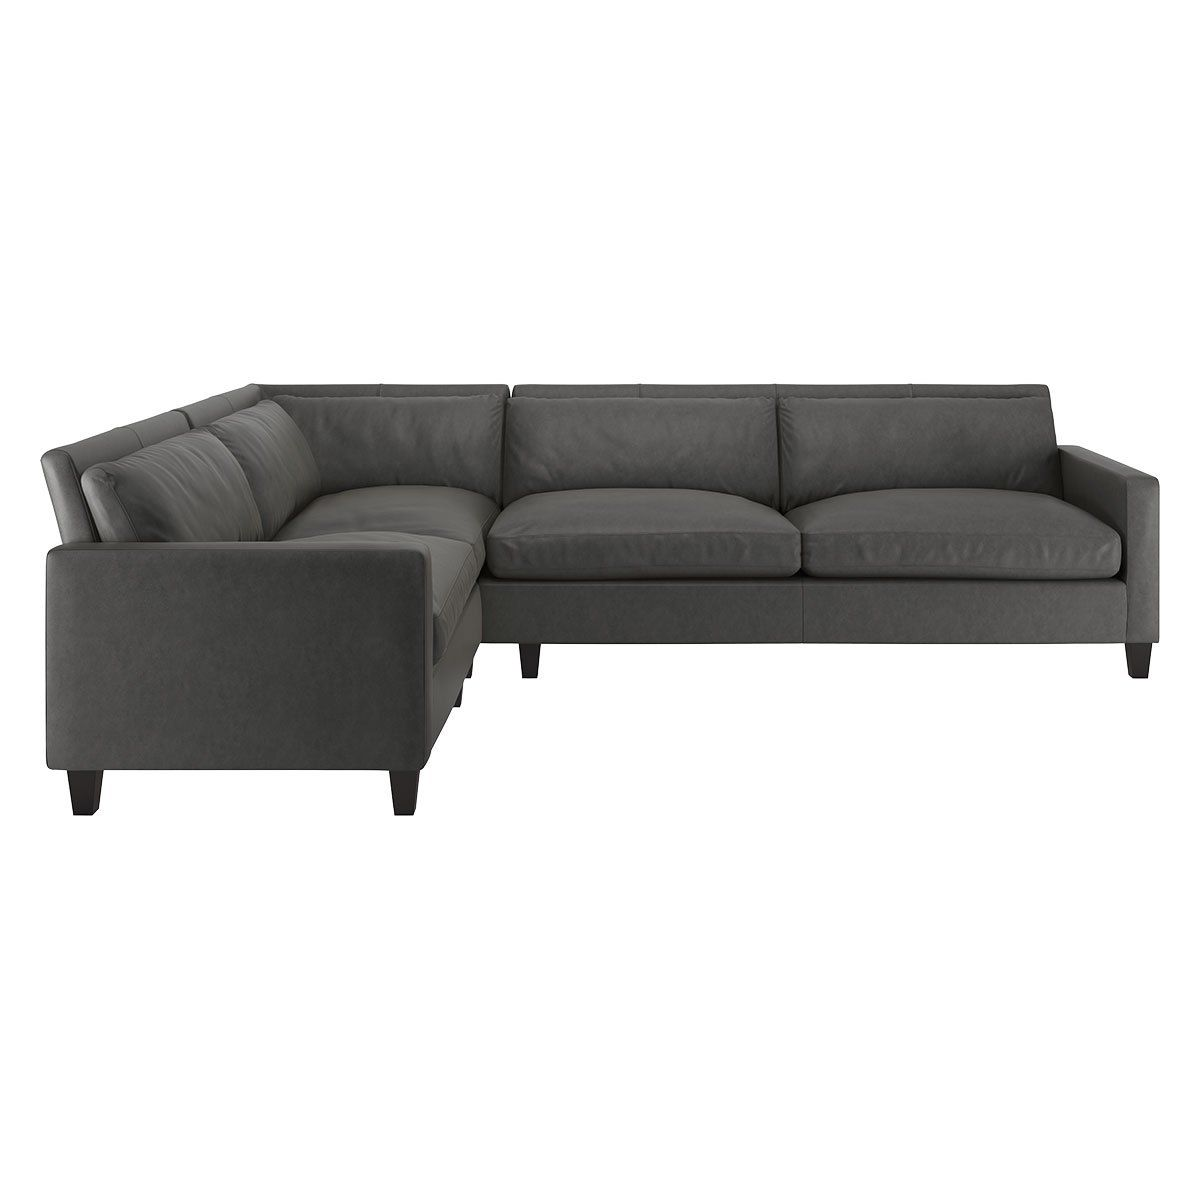 Lounge In Style With This Italian Made Chester Leather Grey Right Arm Corner Sofa Fully Upholstered In Sumptuous Grey Grey Leather Corner Sofa Leather Corner Sofa Corner Sofa